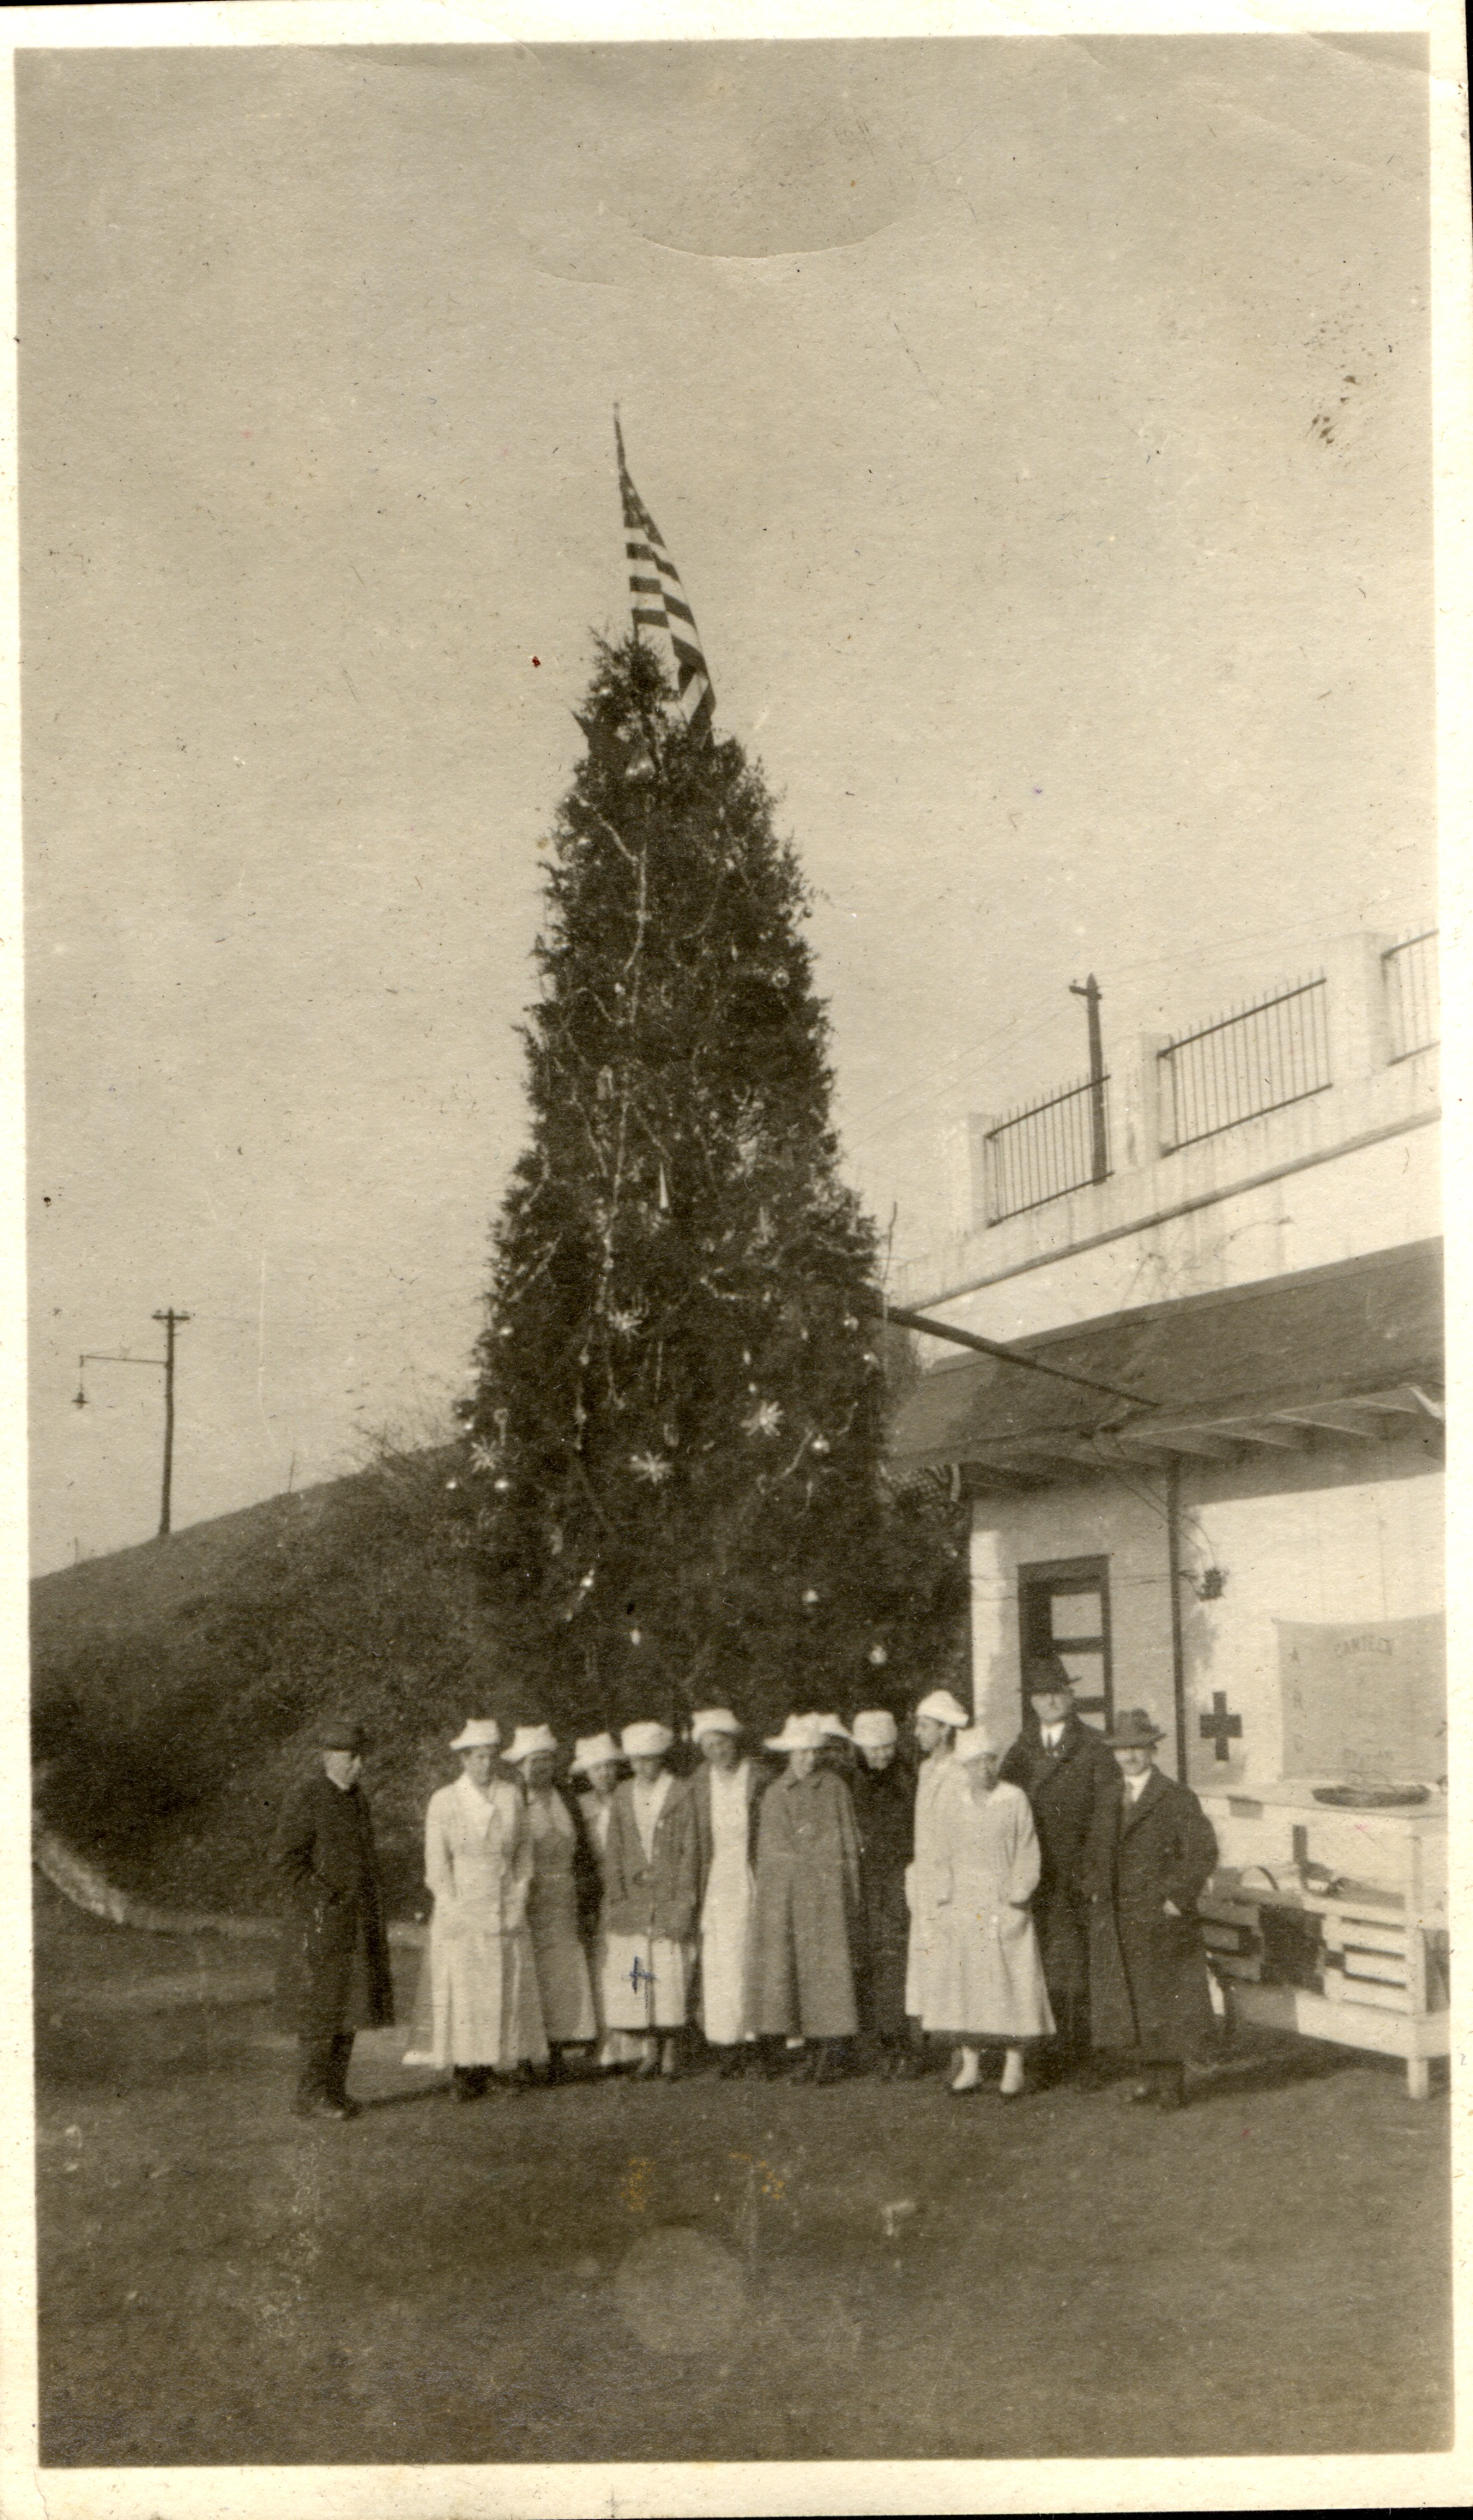 Canteen Workers with Christmas Tree, 1918-19